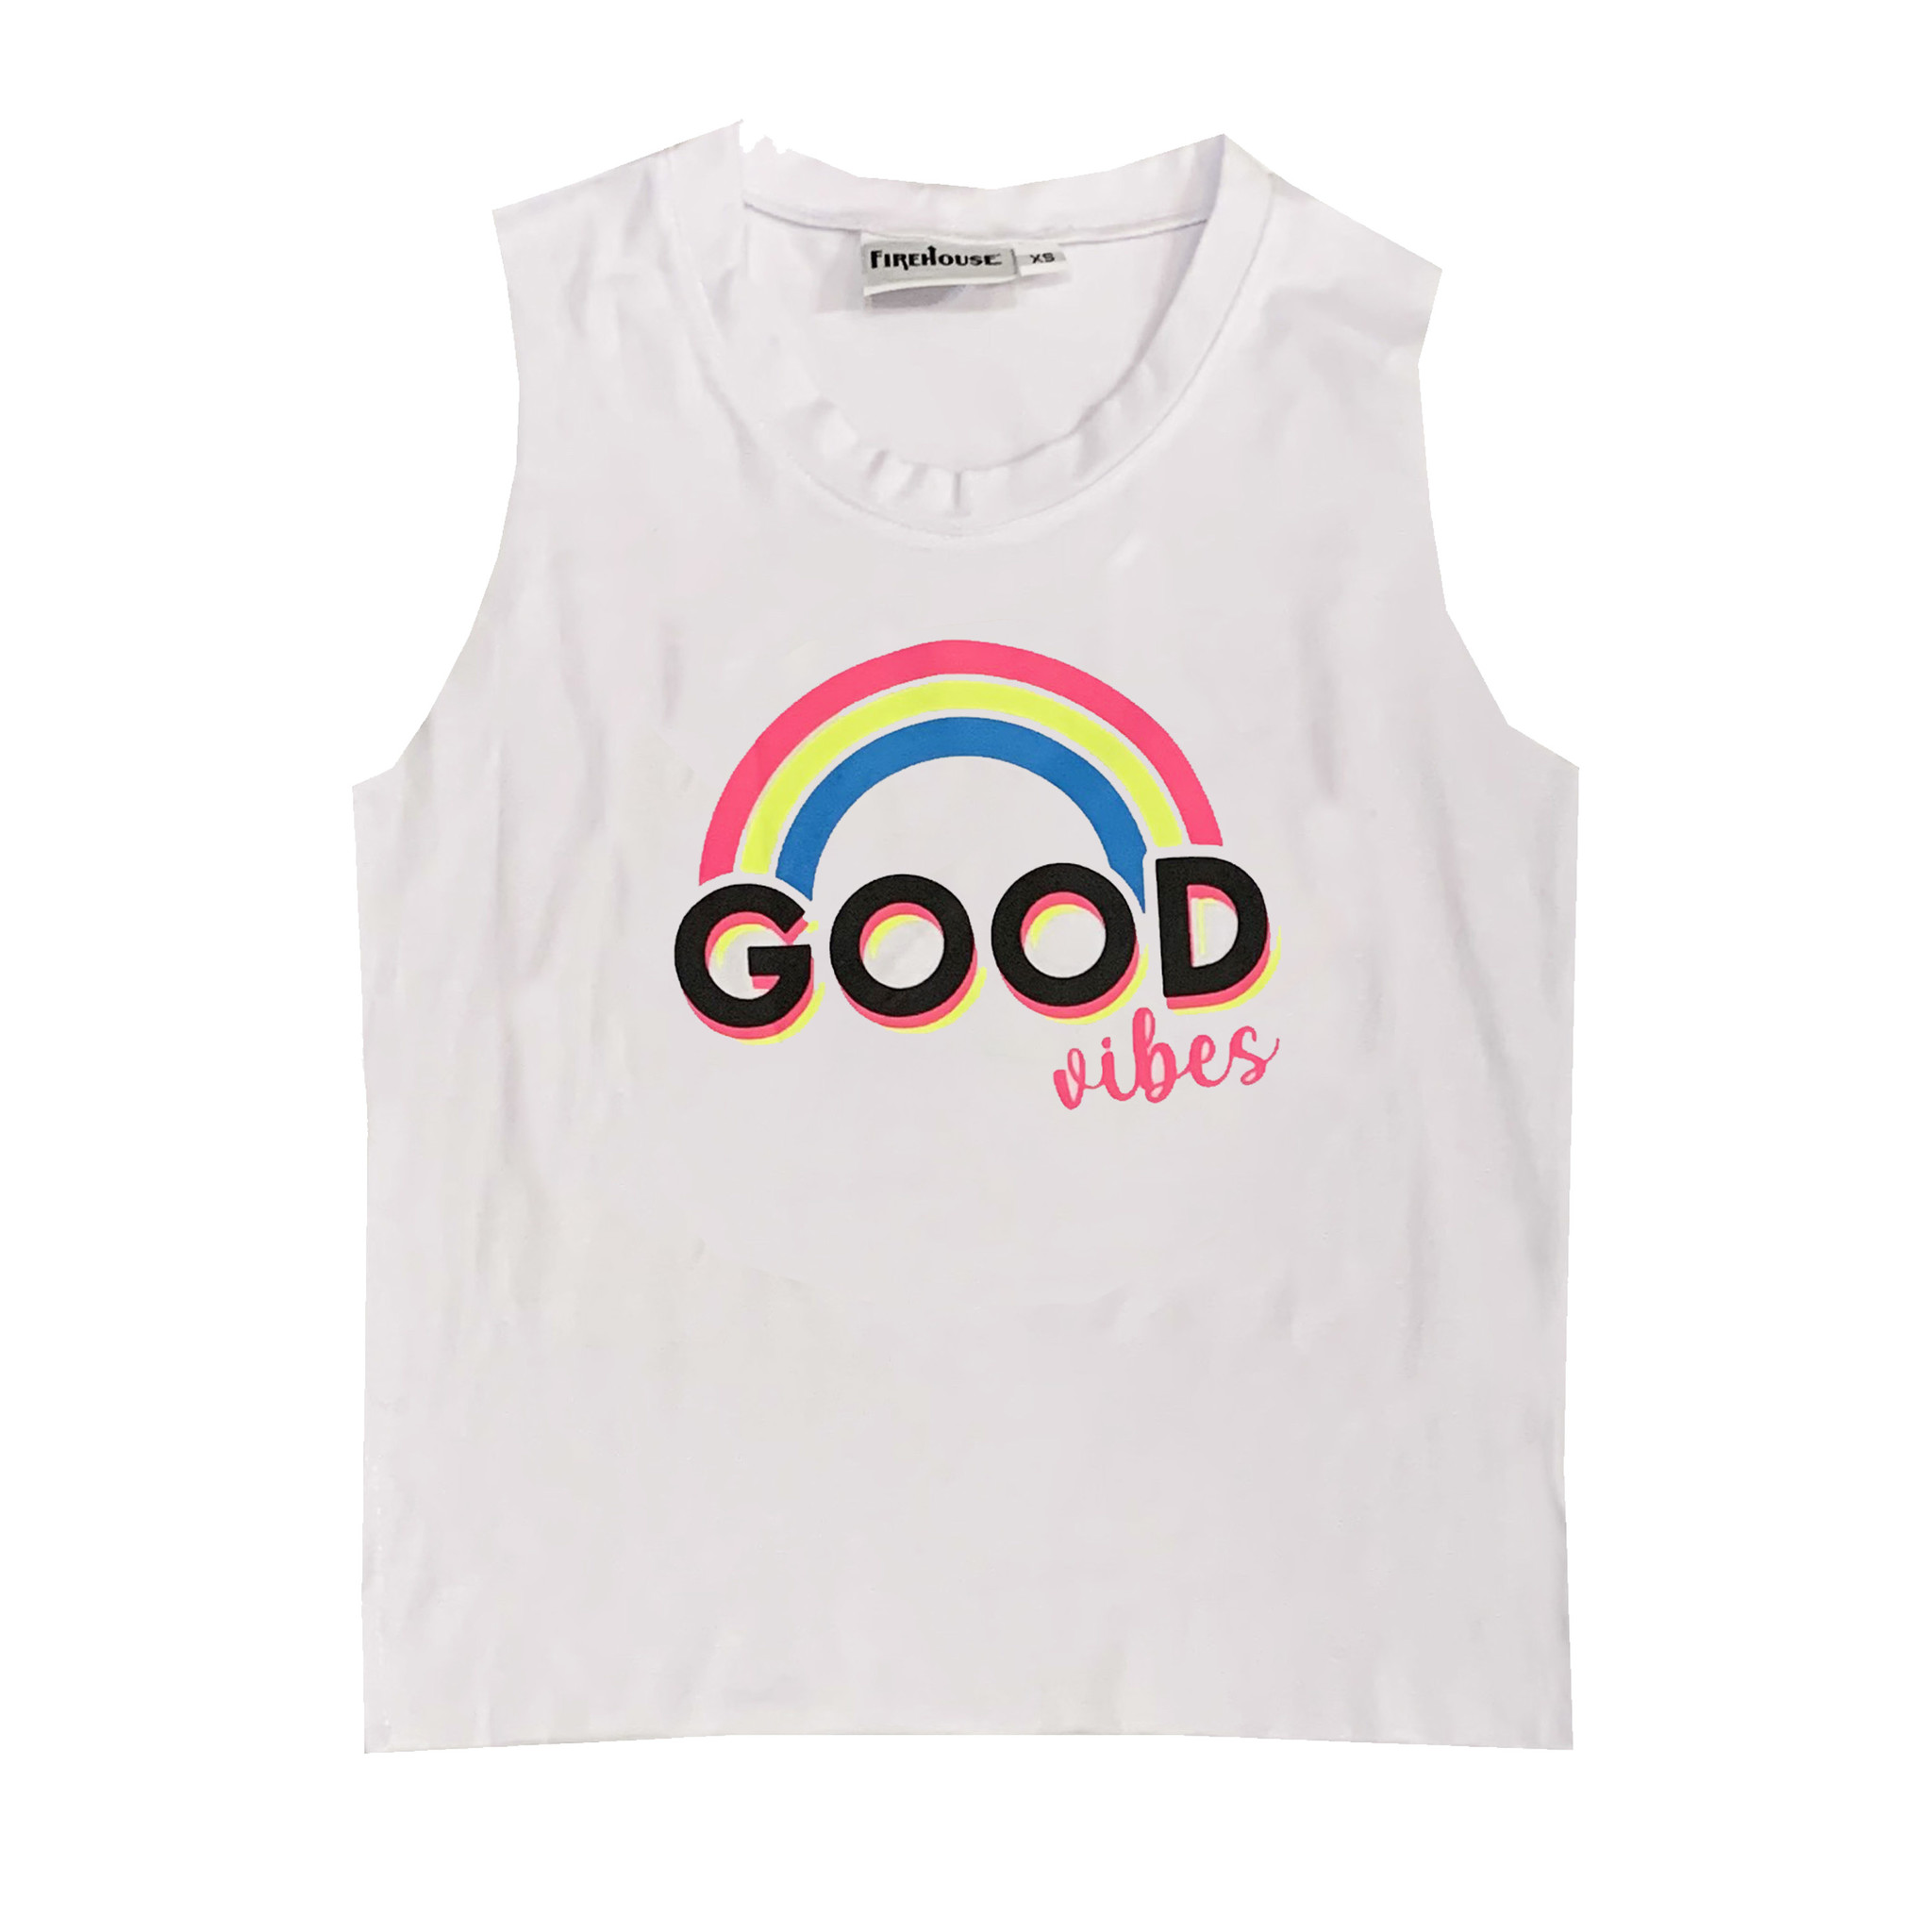 Firehouse White Good Vibes Rainbow Tank